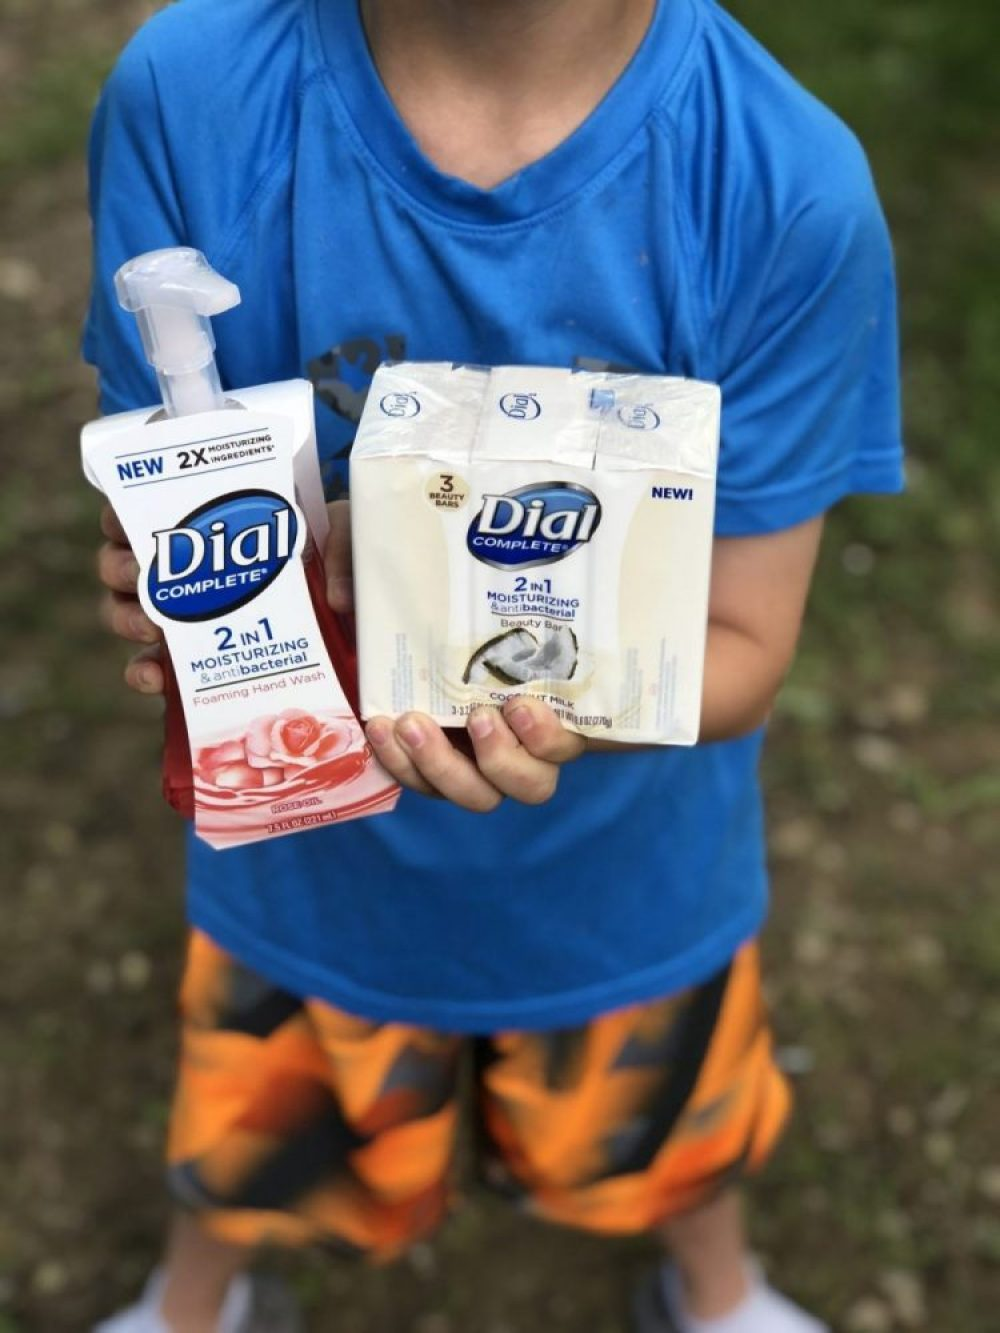 ad Mommy & Me Outdoor Activities Made Simple With NEW! Dial Complete 2 in 1 Moisturizing & Antibacterial Foaming Hand Wash & Beauty Bar